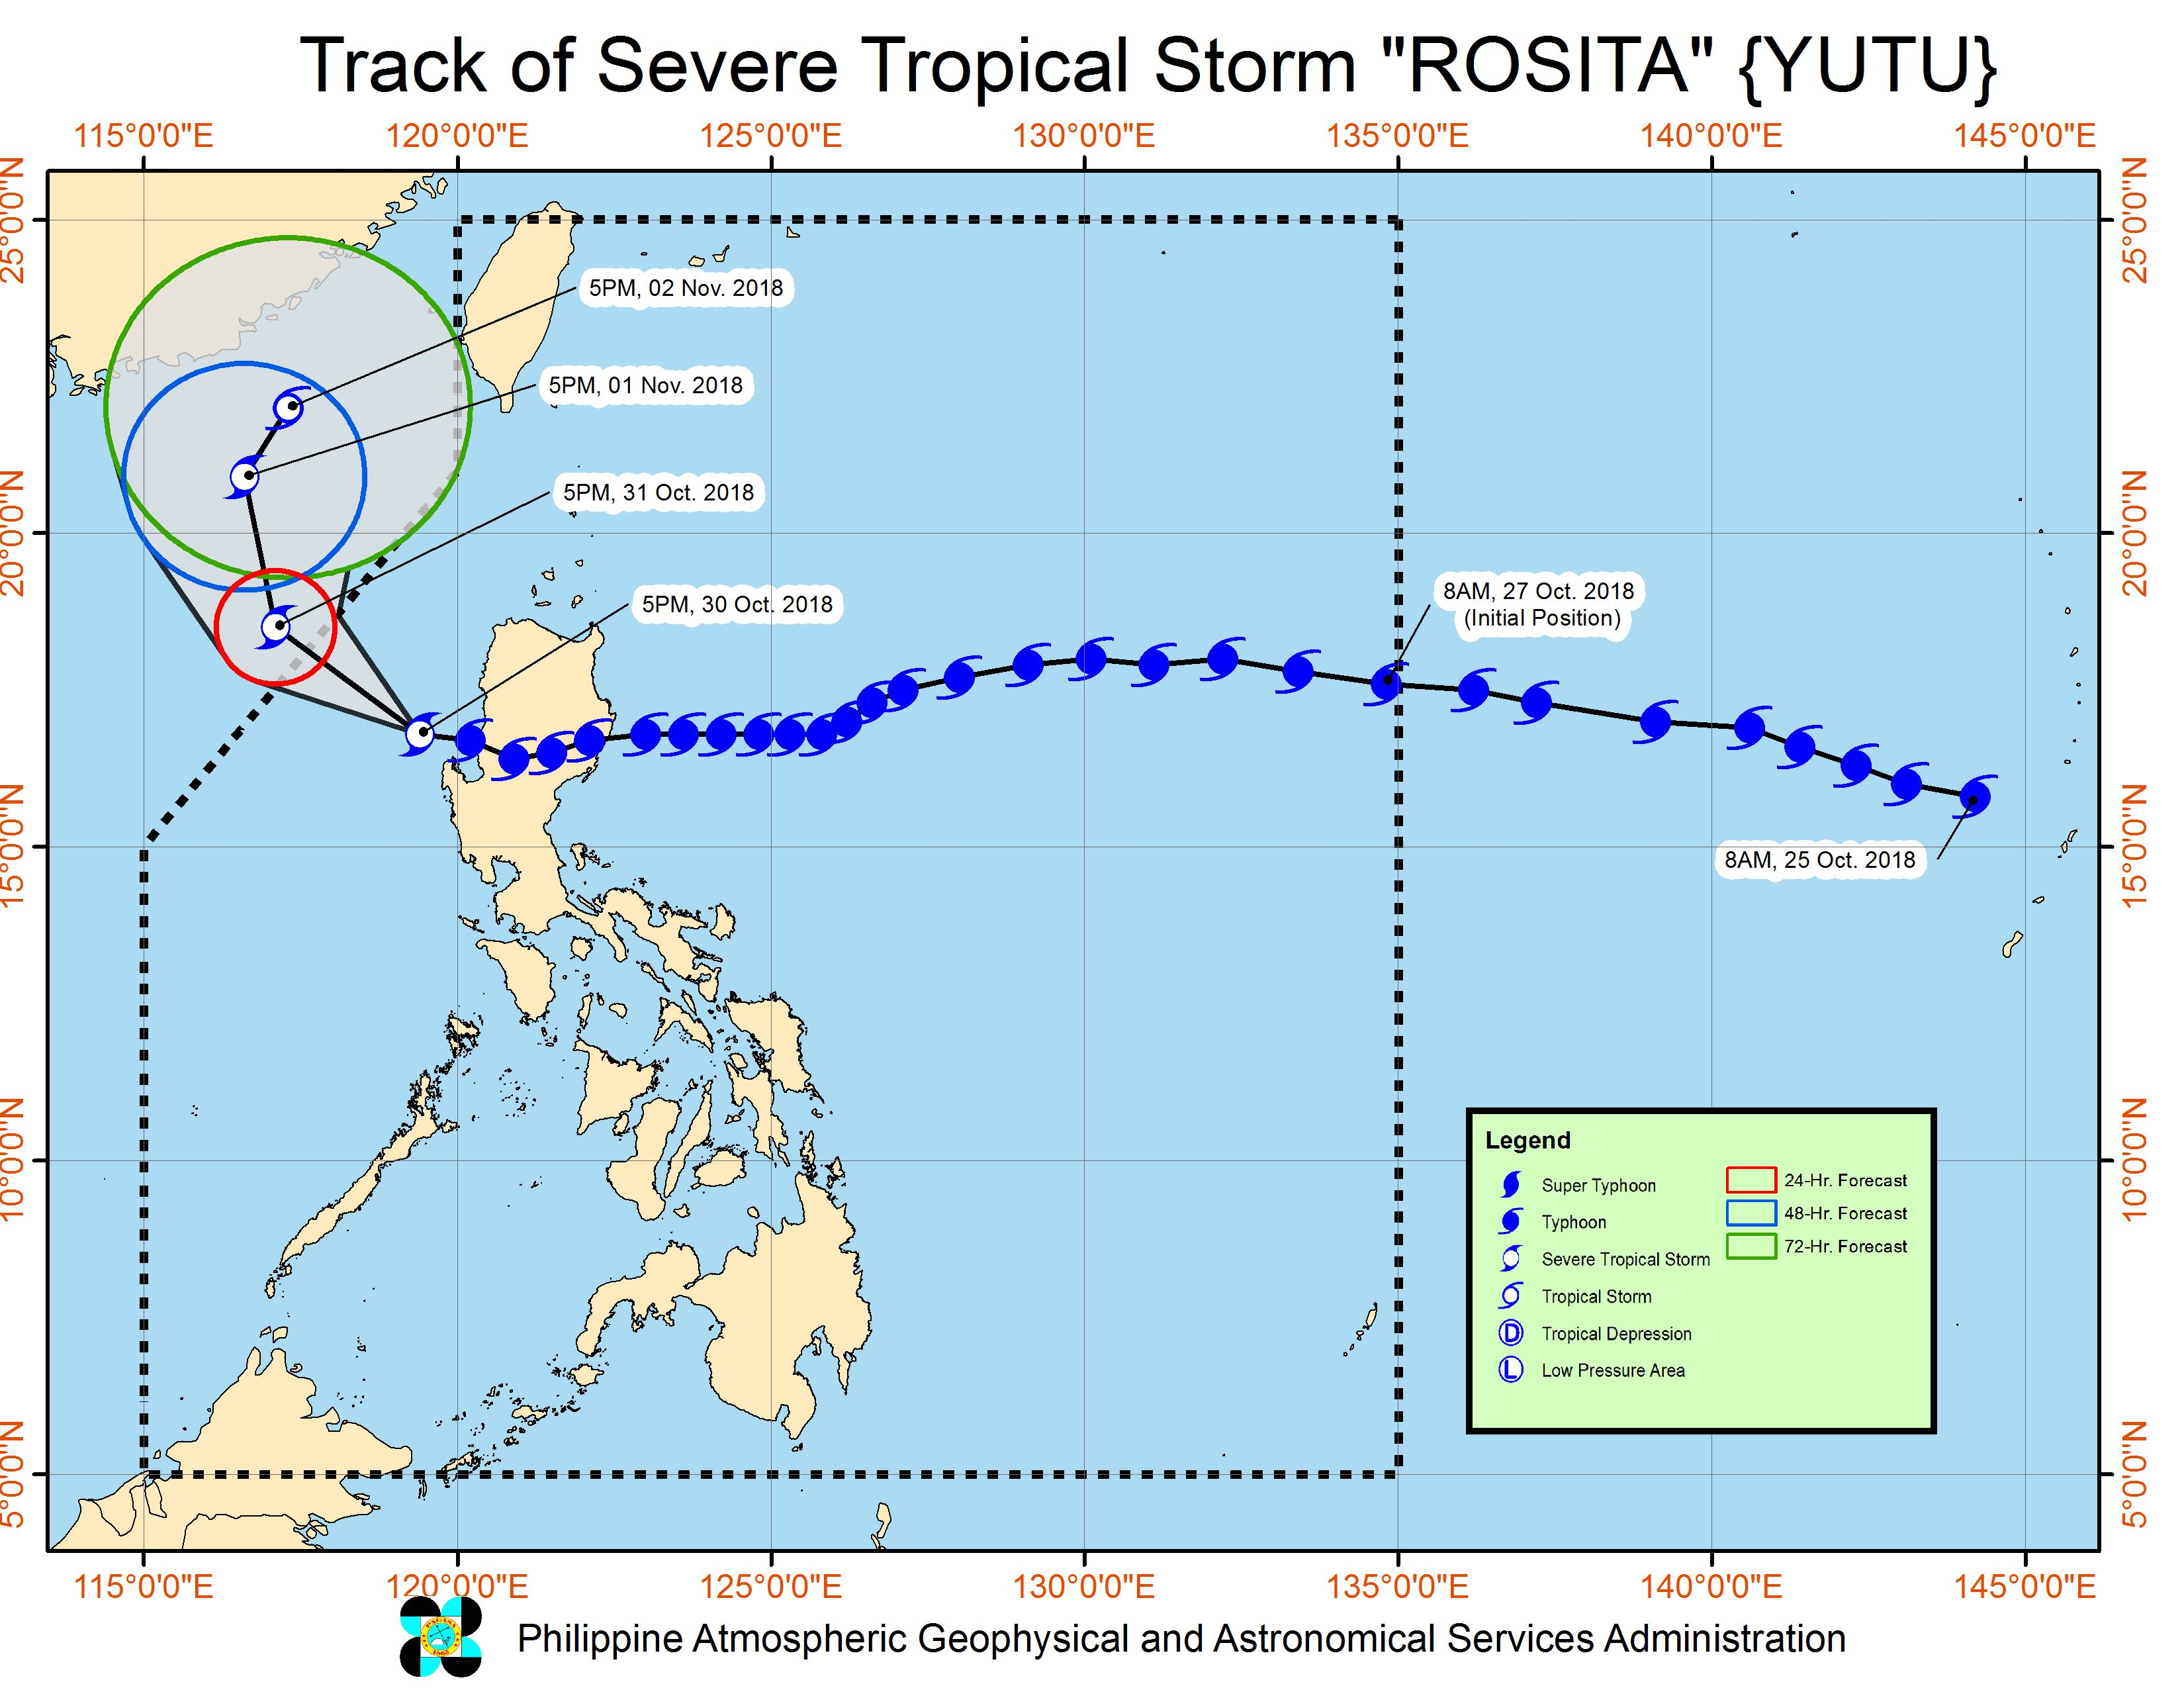 Forecast track of Severe Tropical Storm Rosita (Yutu) as of October 30, 2018, 8 pm. Image from PAGASA